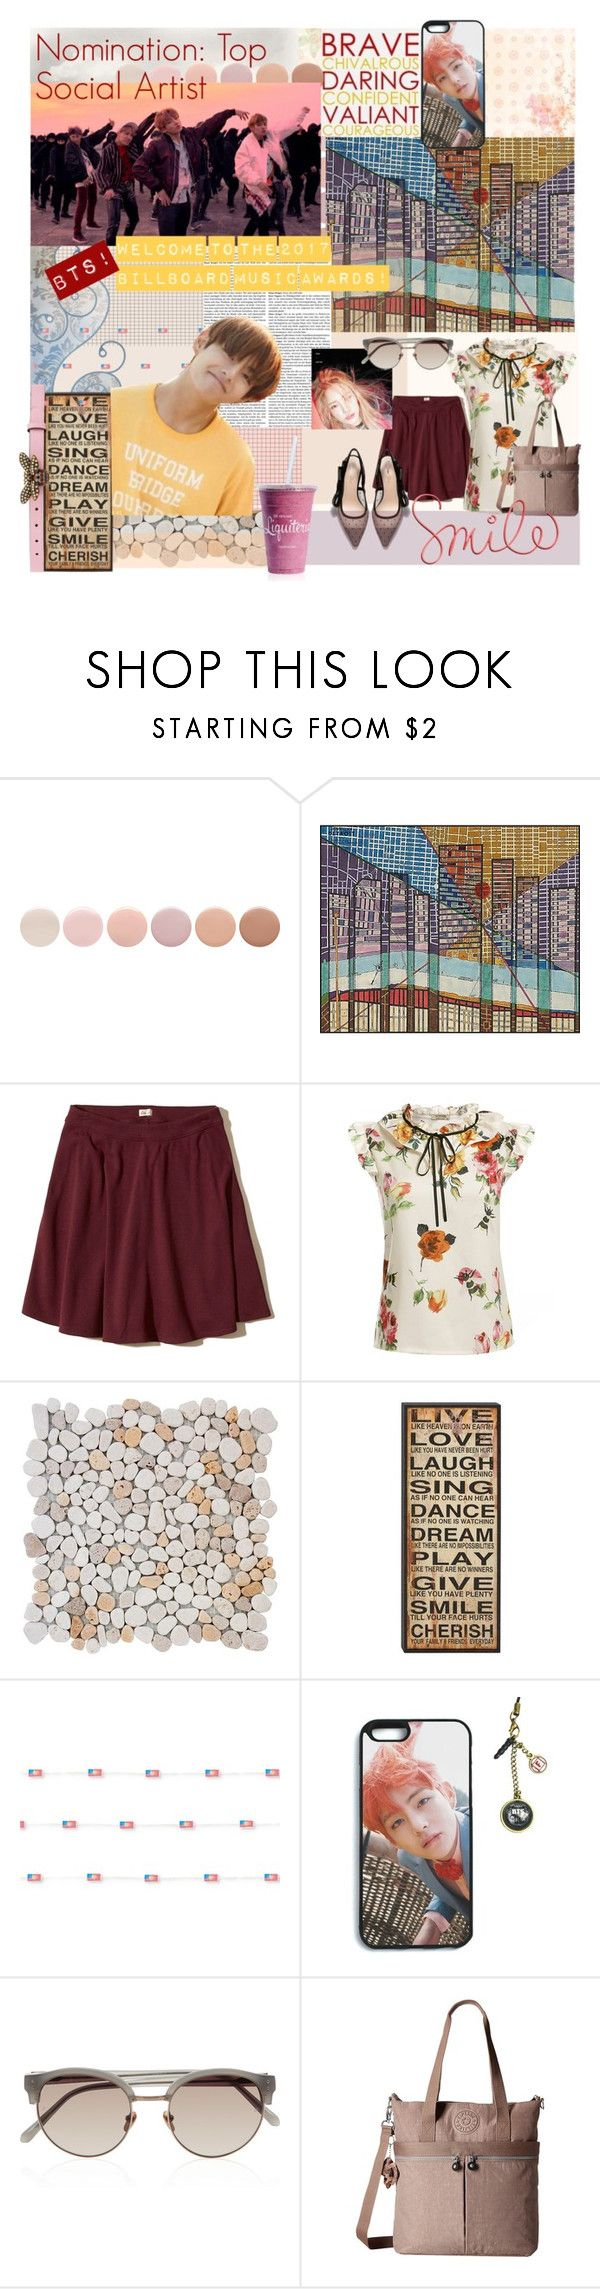 """Welcome BTS to the Billboard Music Awards !!!"" by tokyotrekker ❤ liked on Polyvore featuring Deborah Lippmann, Hollister Co., Studio Mercantile, GET LOST, Linda Farrow, Kipling, Gucci, kpop, bbmas and bts"